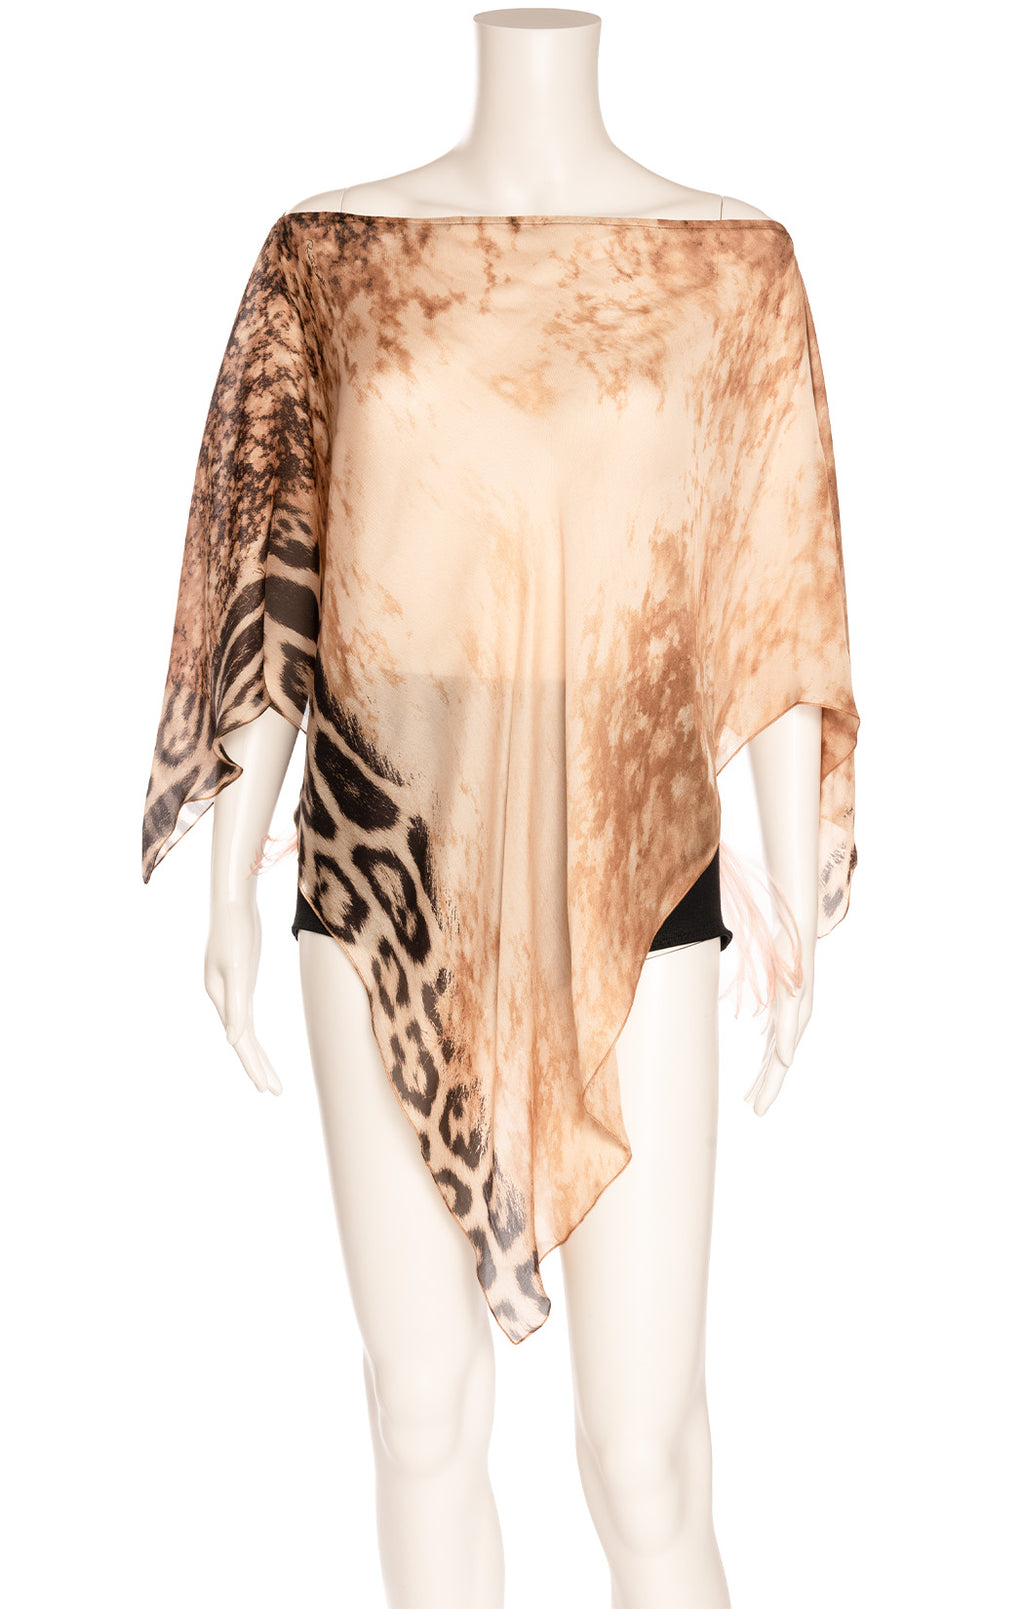 ROBERTO CAVALLI  Top Size: no size tags fits like medium